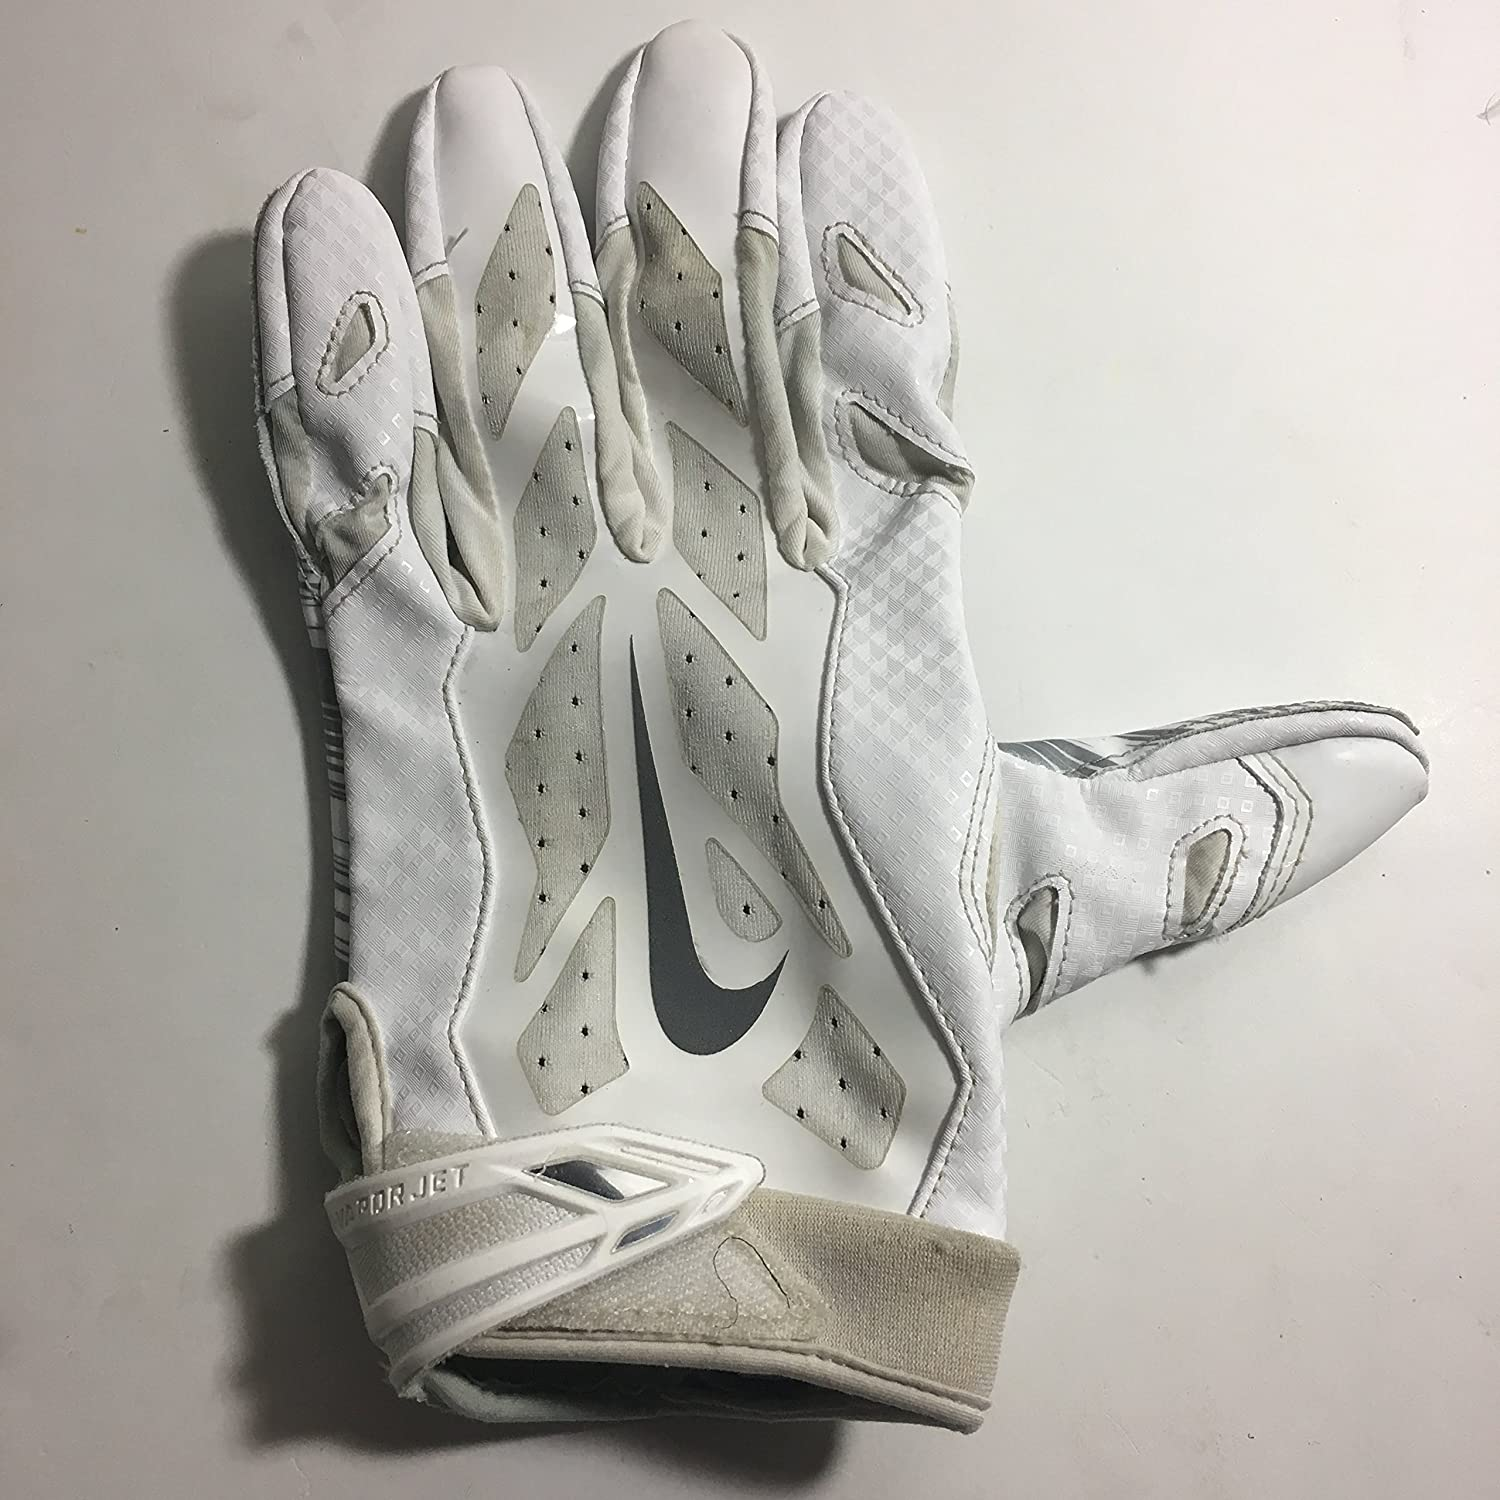 2016 Season LEFT HAND ONLY Brice Butler #19 Game Used Nike Vapor Jet Football Glove Dallas Cowboys XL Oakland Raiders